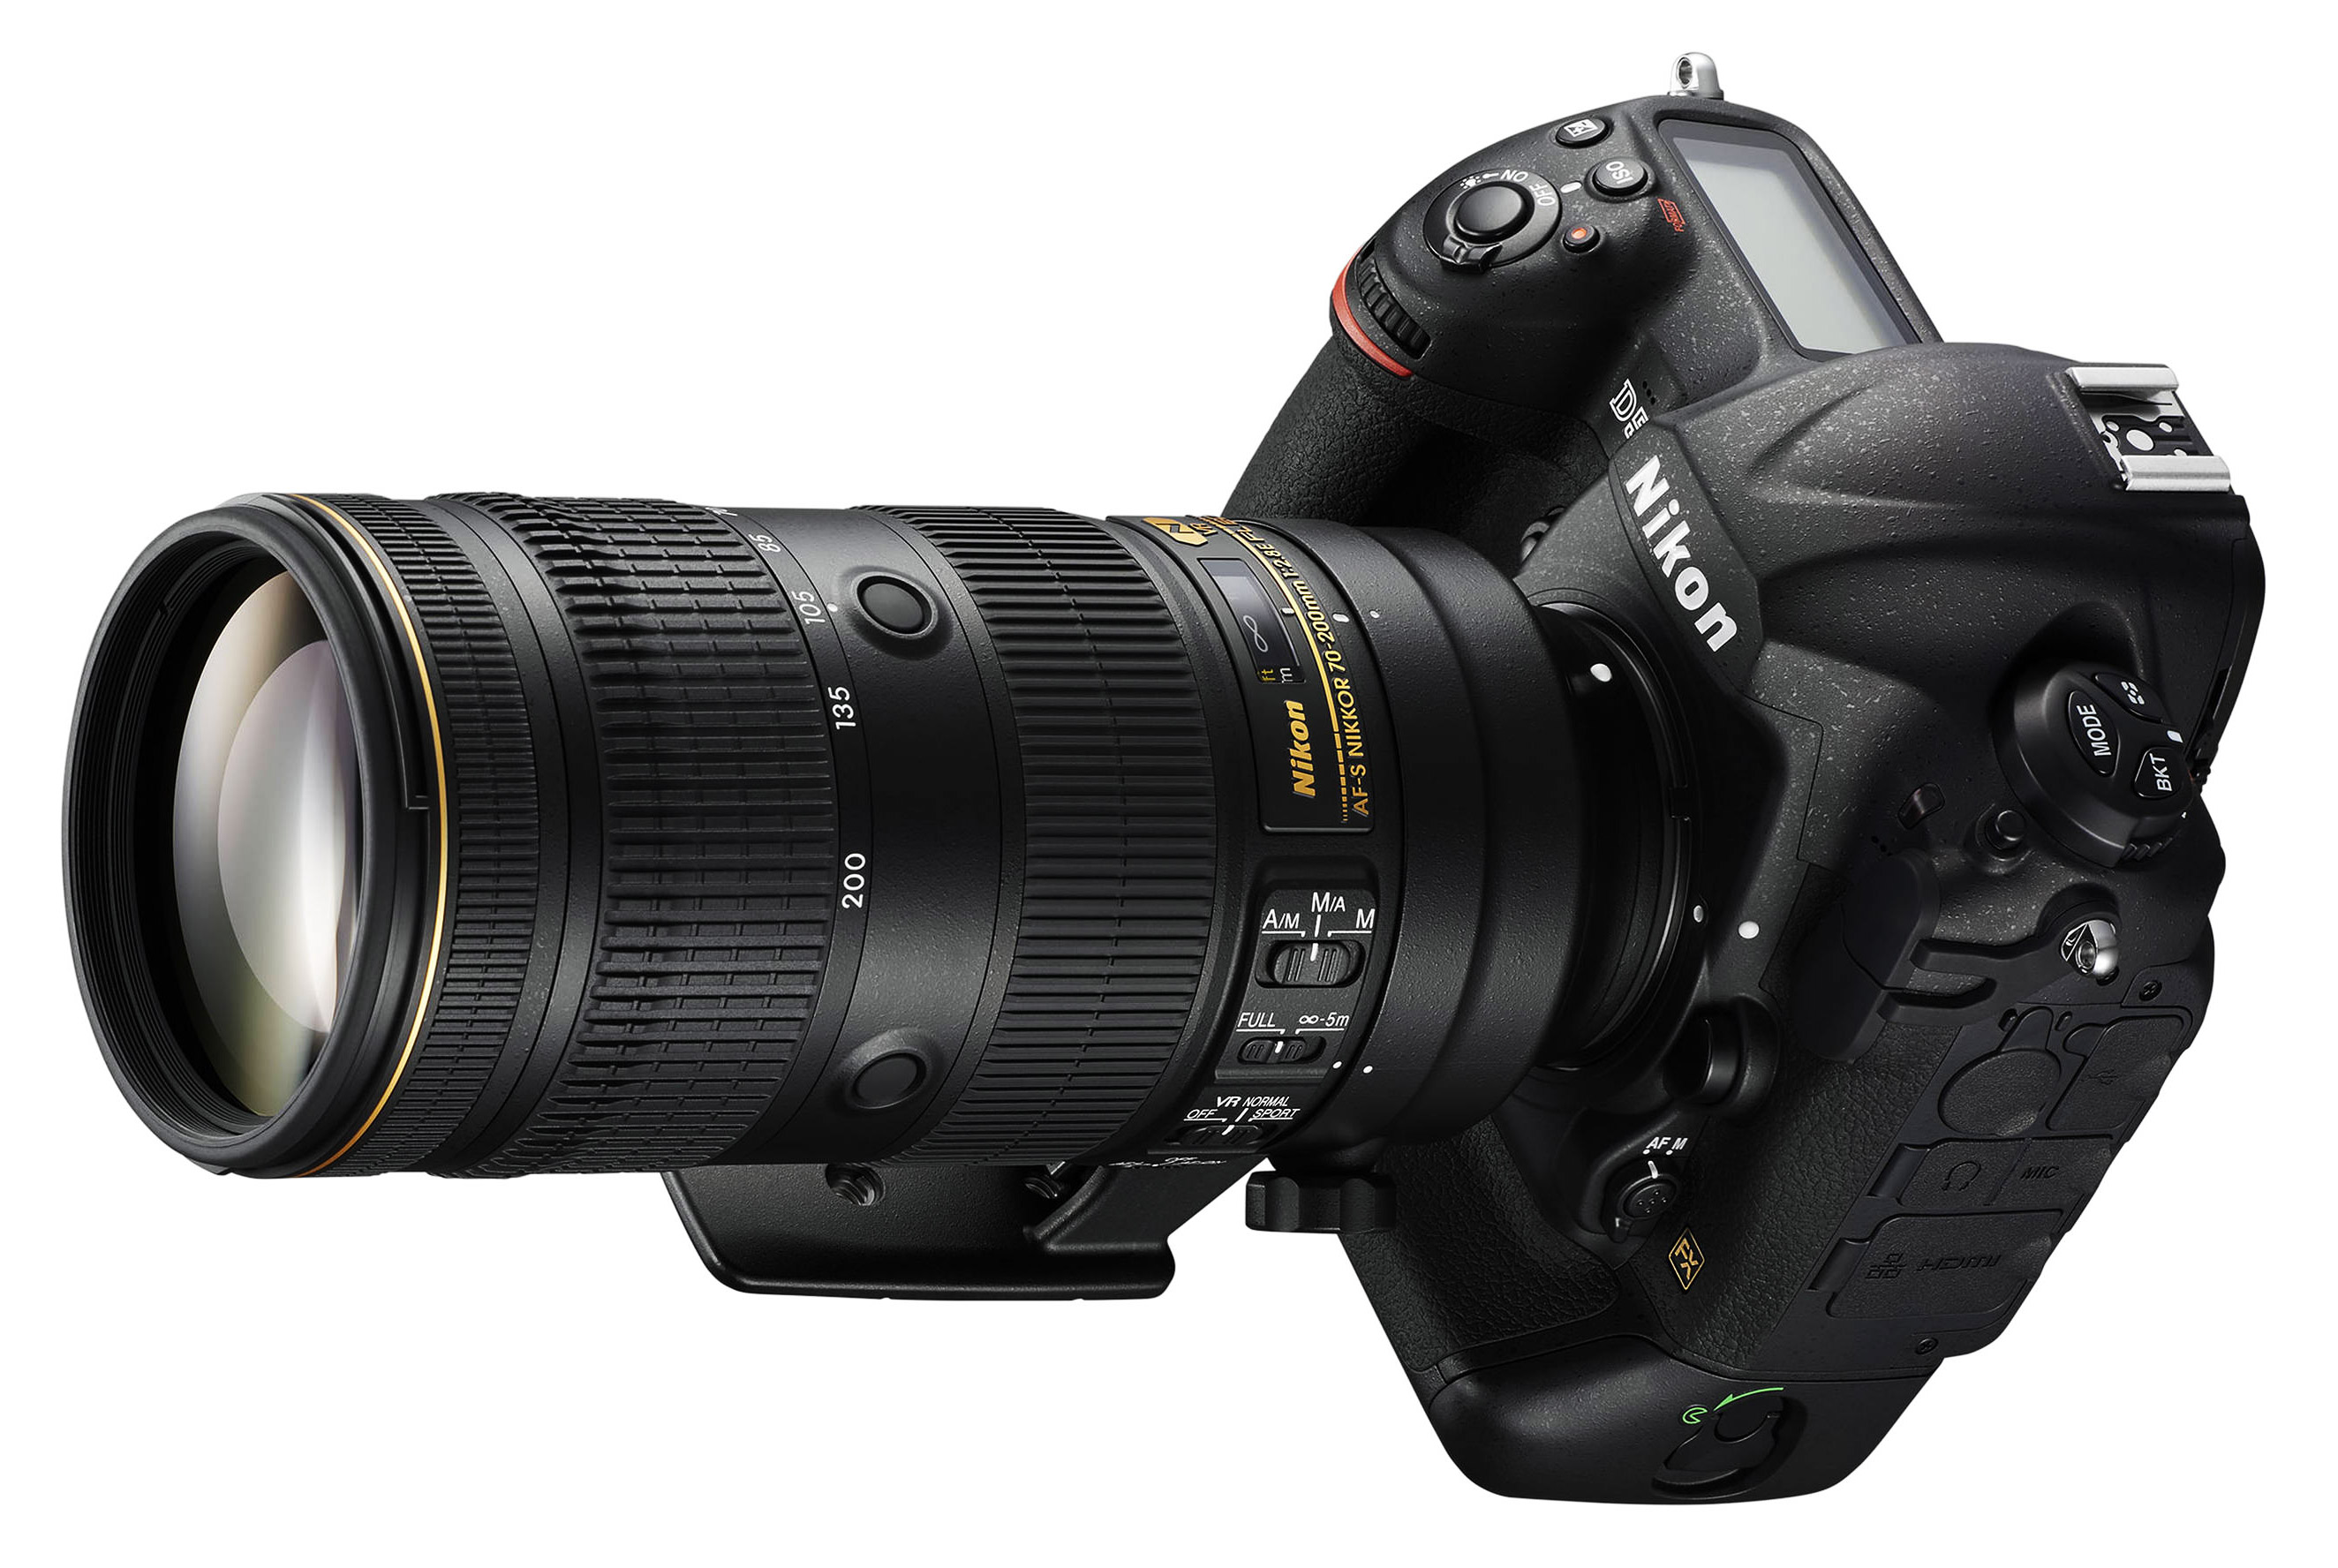 Nikon Af S 70 200mm F 28e Fl Ed Vr Specifications And Opinions Tamron 28 Di Ld If Macro Lens For